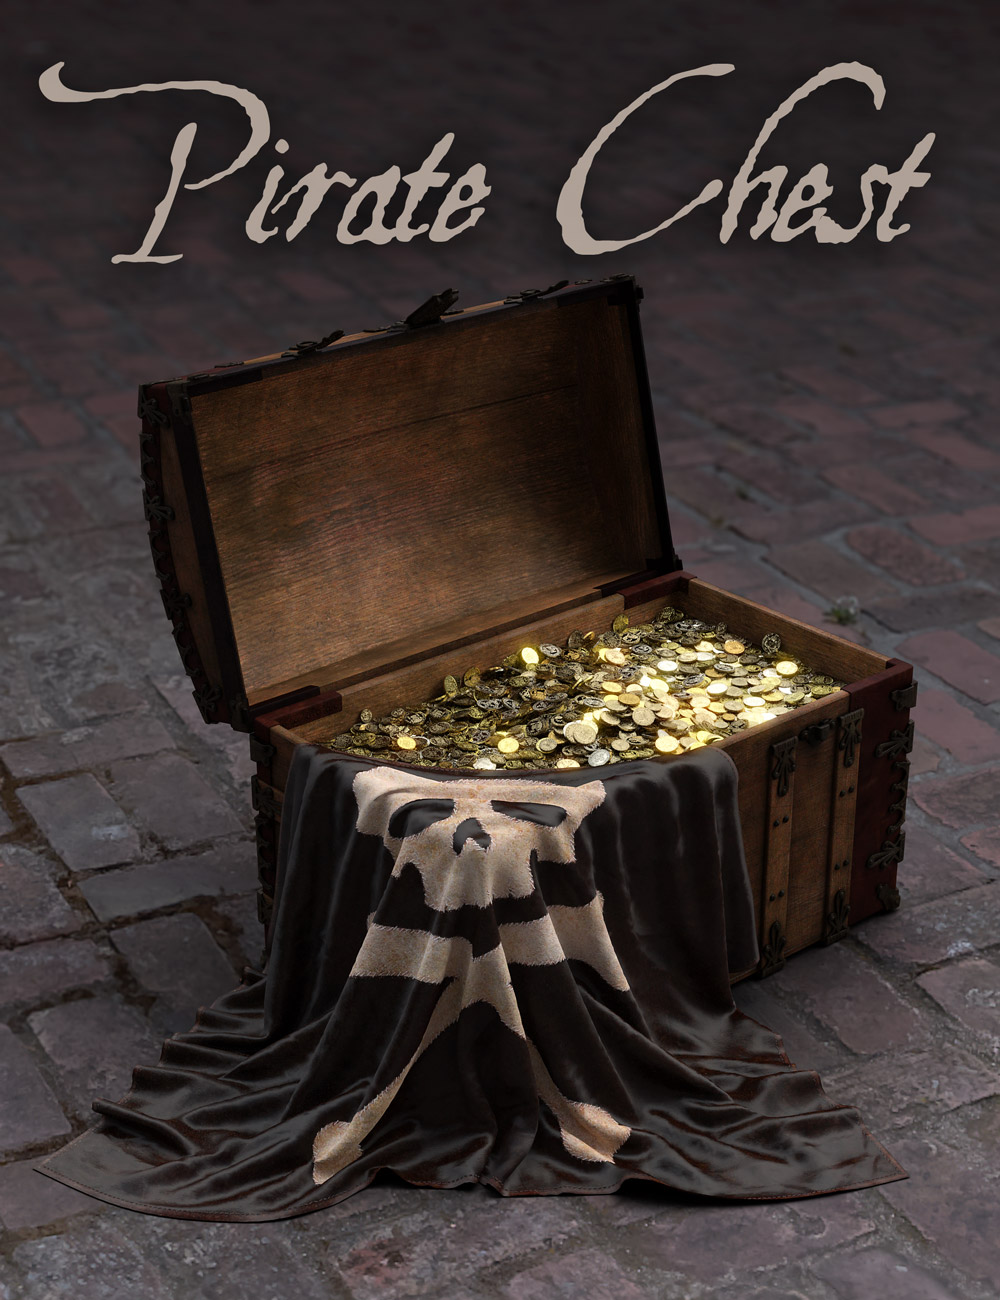 Pirate Treasure Chest, Coins and Flag by: Age of Armour, 3D Models by Daz 3D